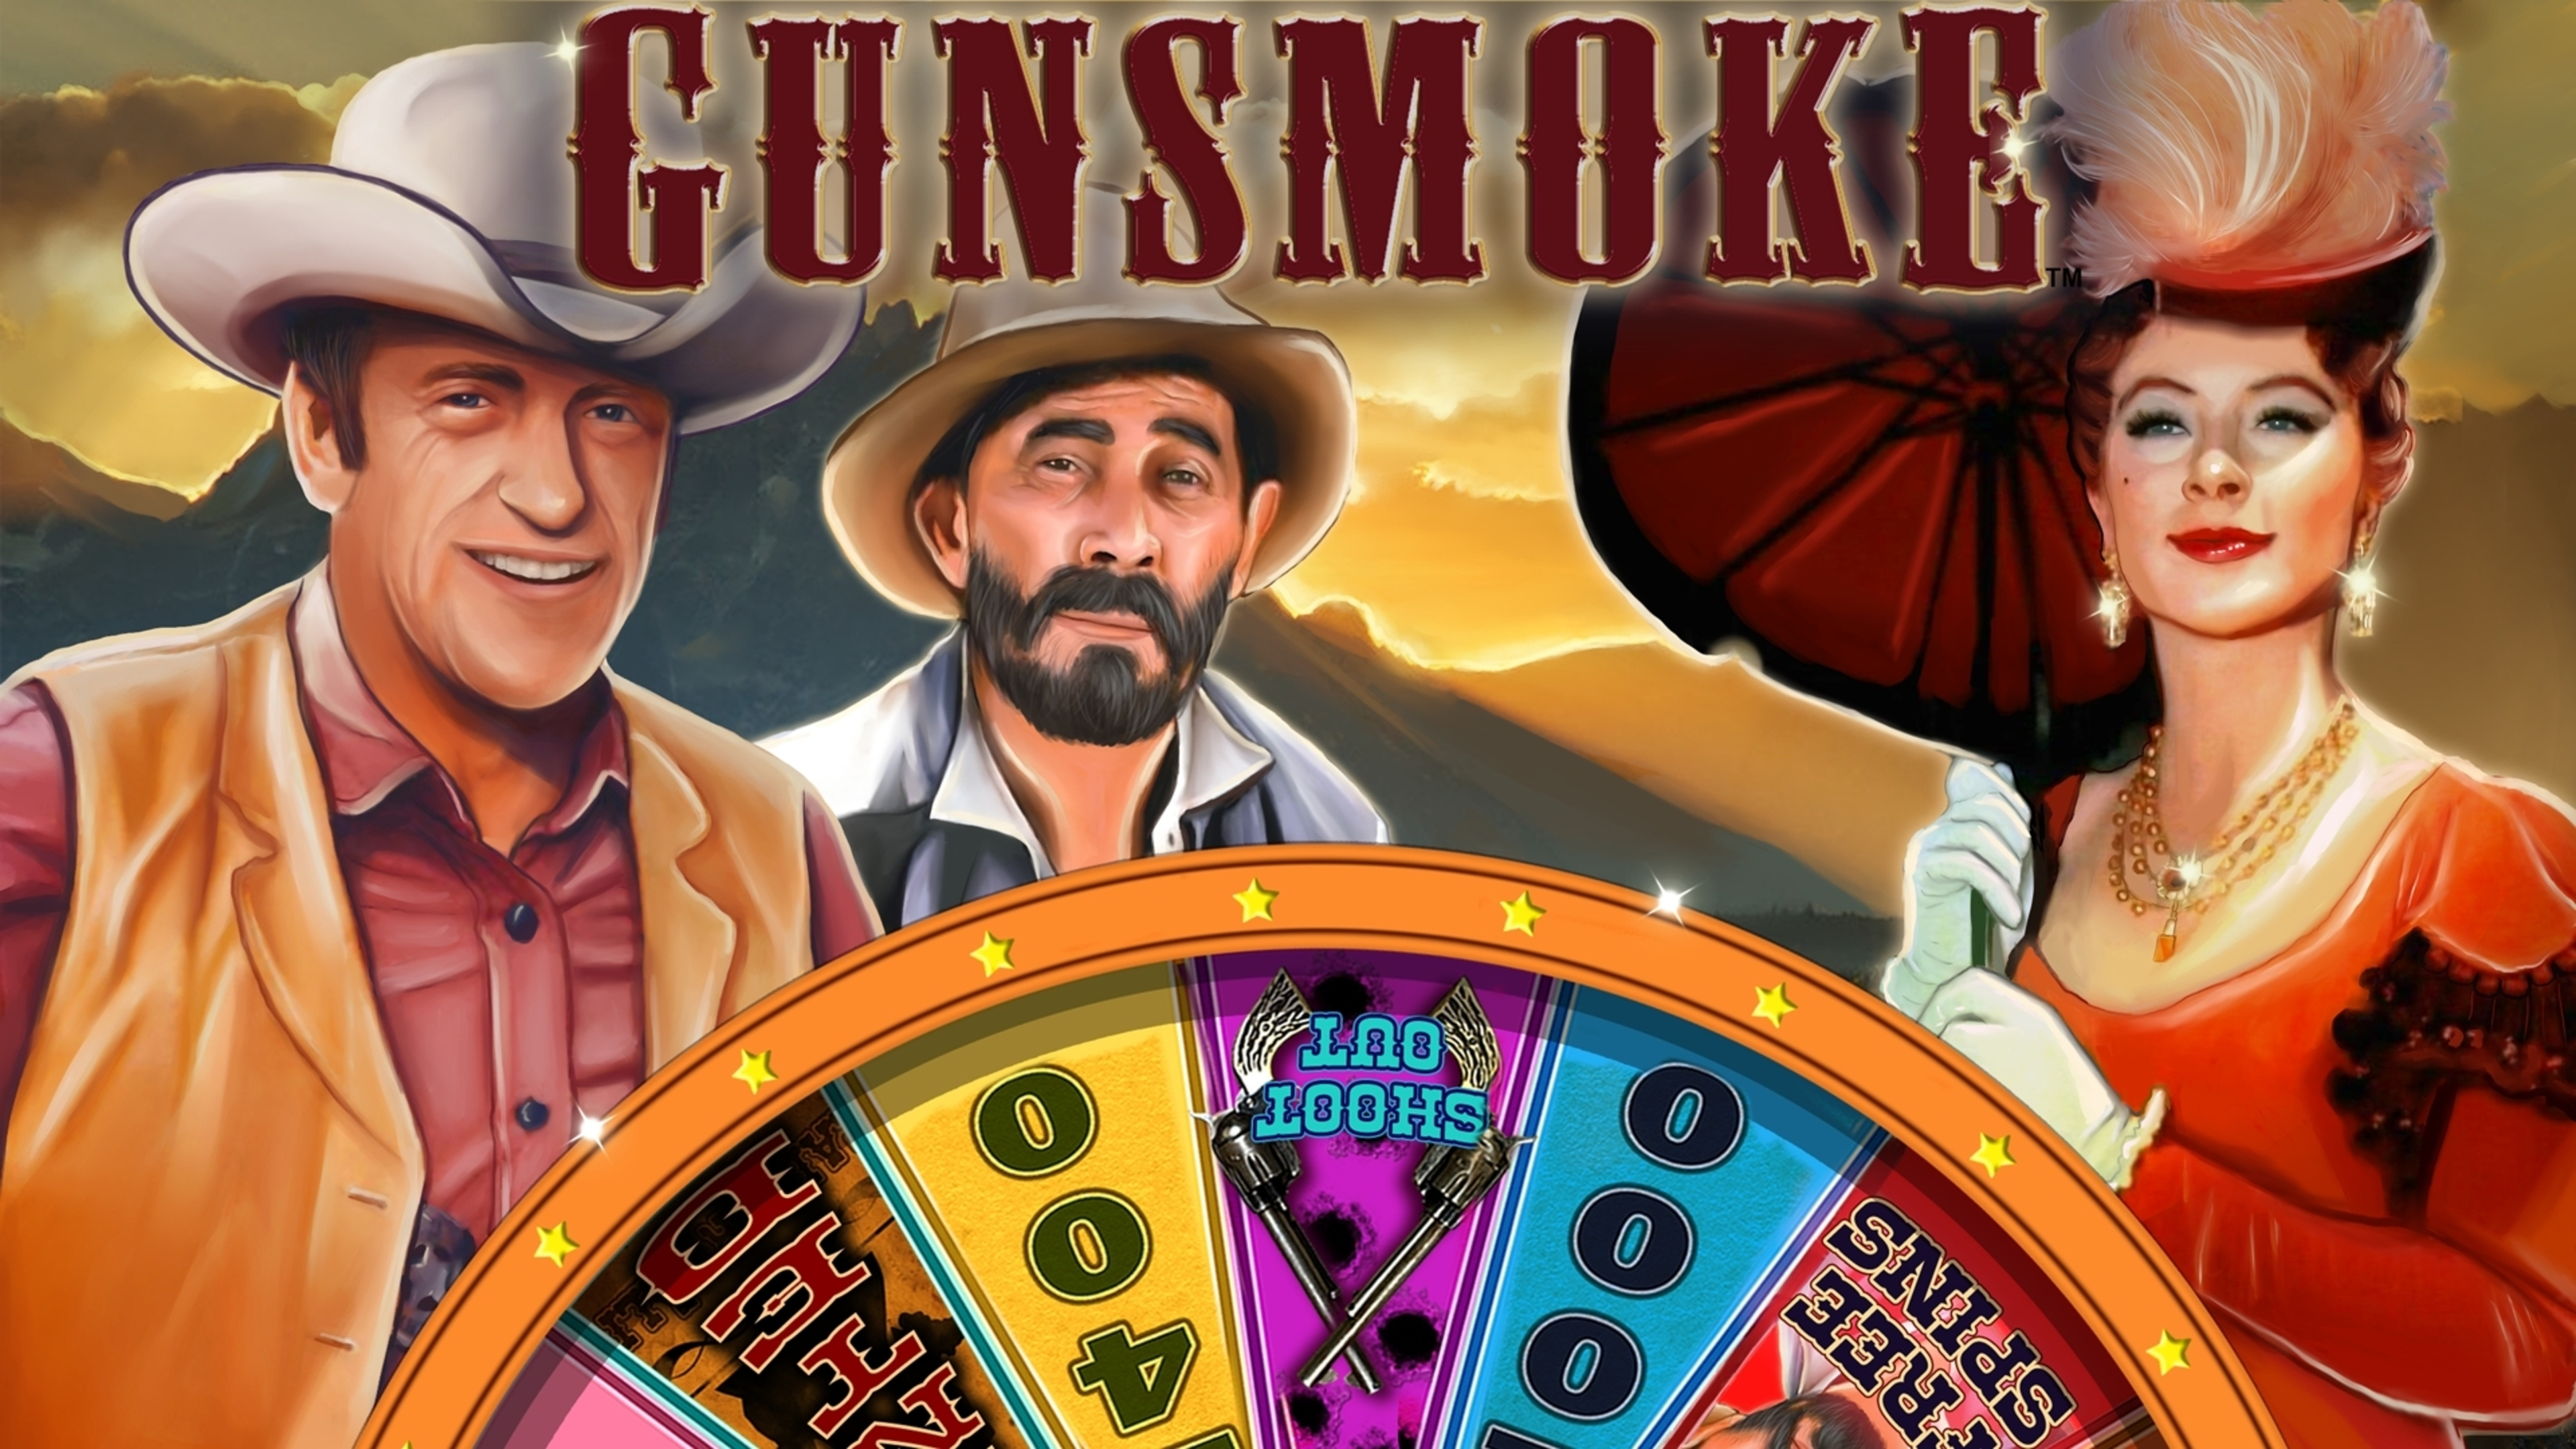 Se Gunsmoke Online Slot Demo Game, 2 By 2 Gaming